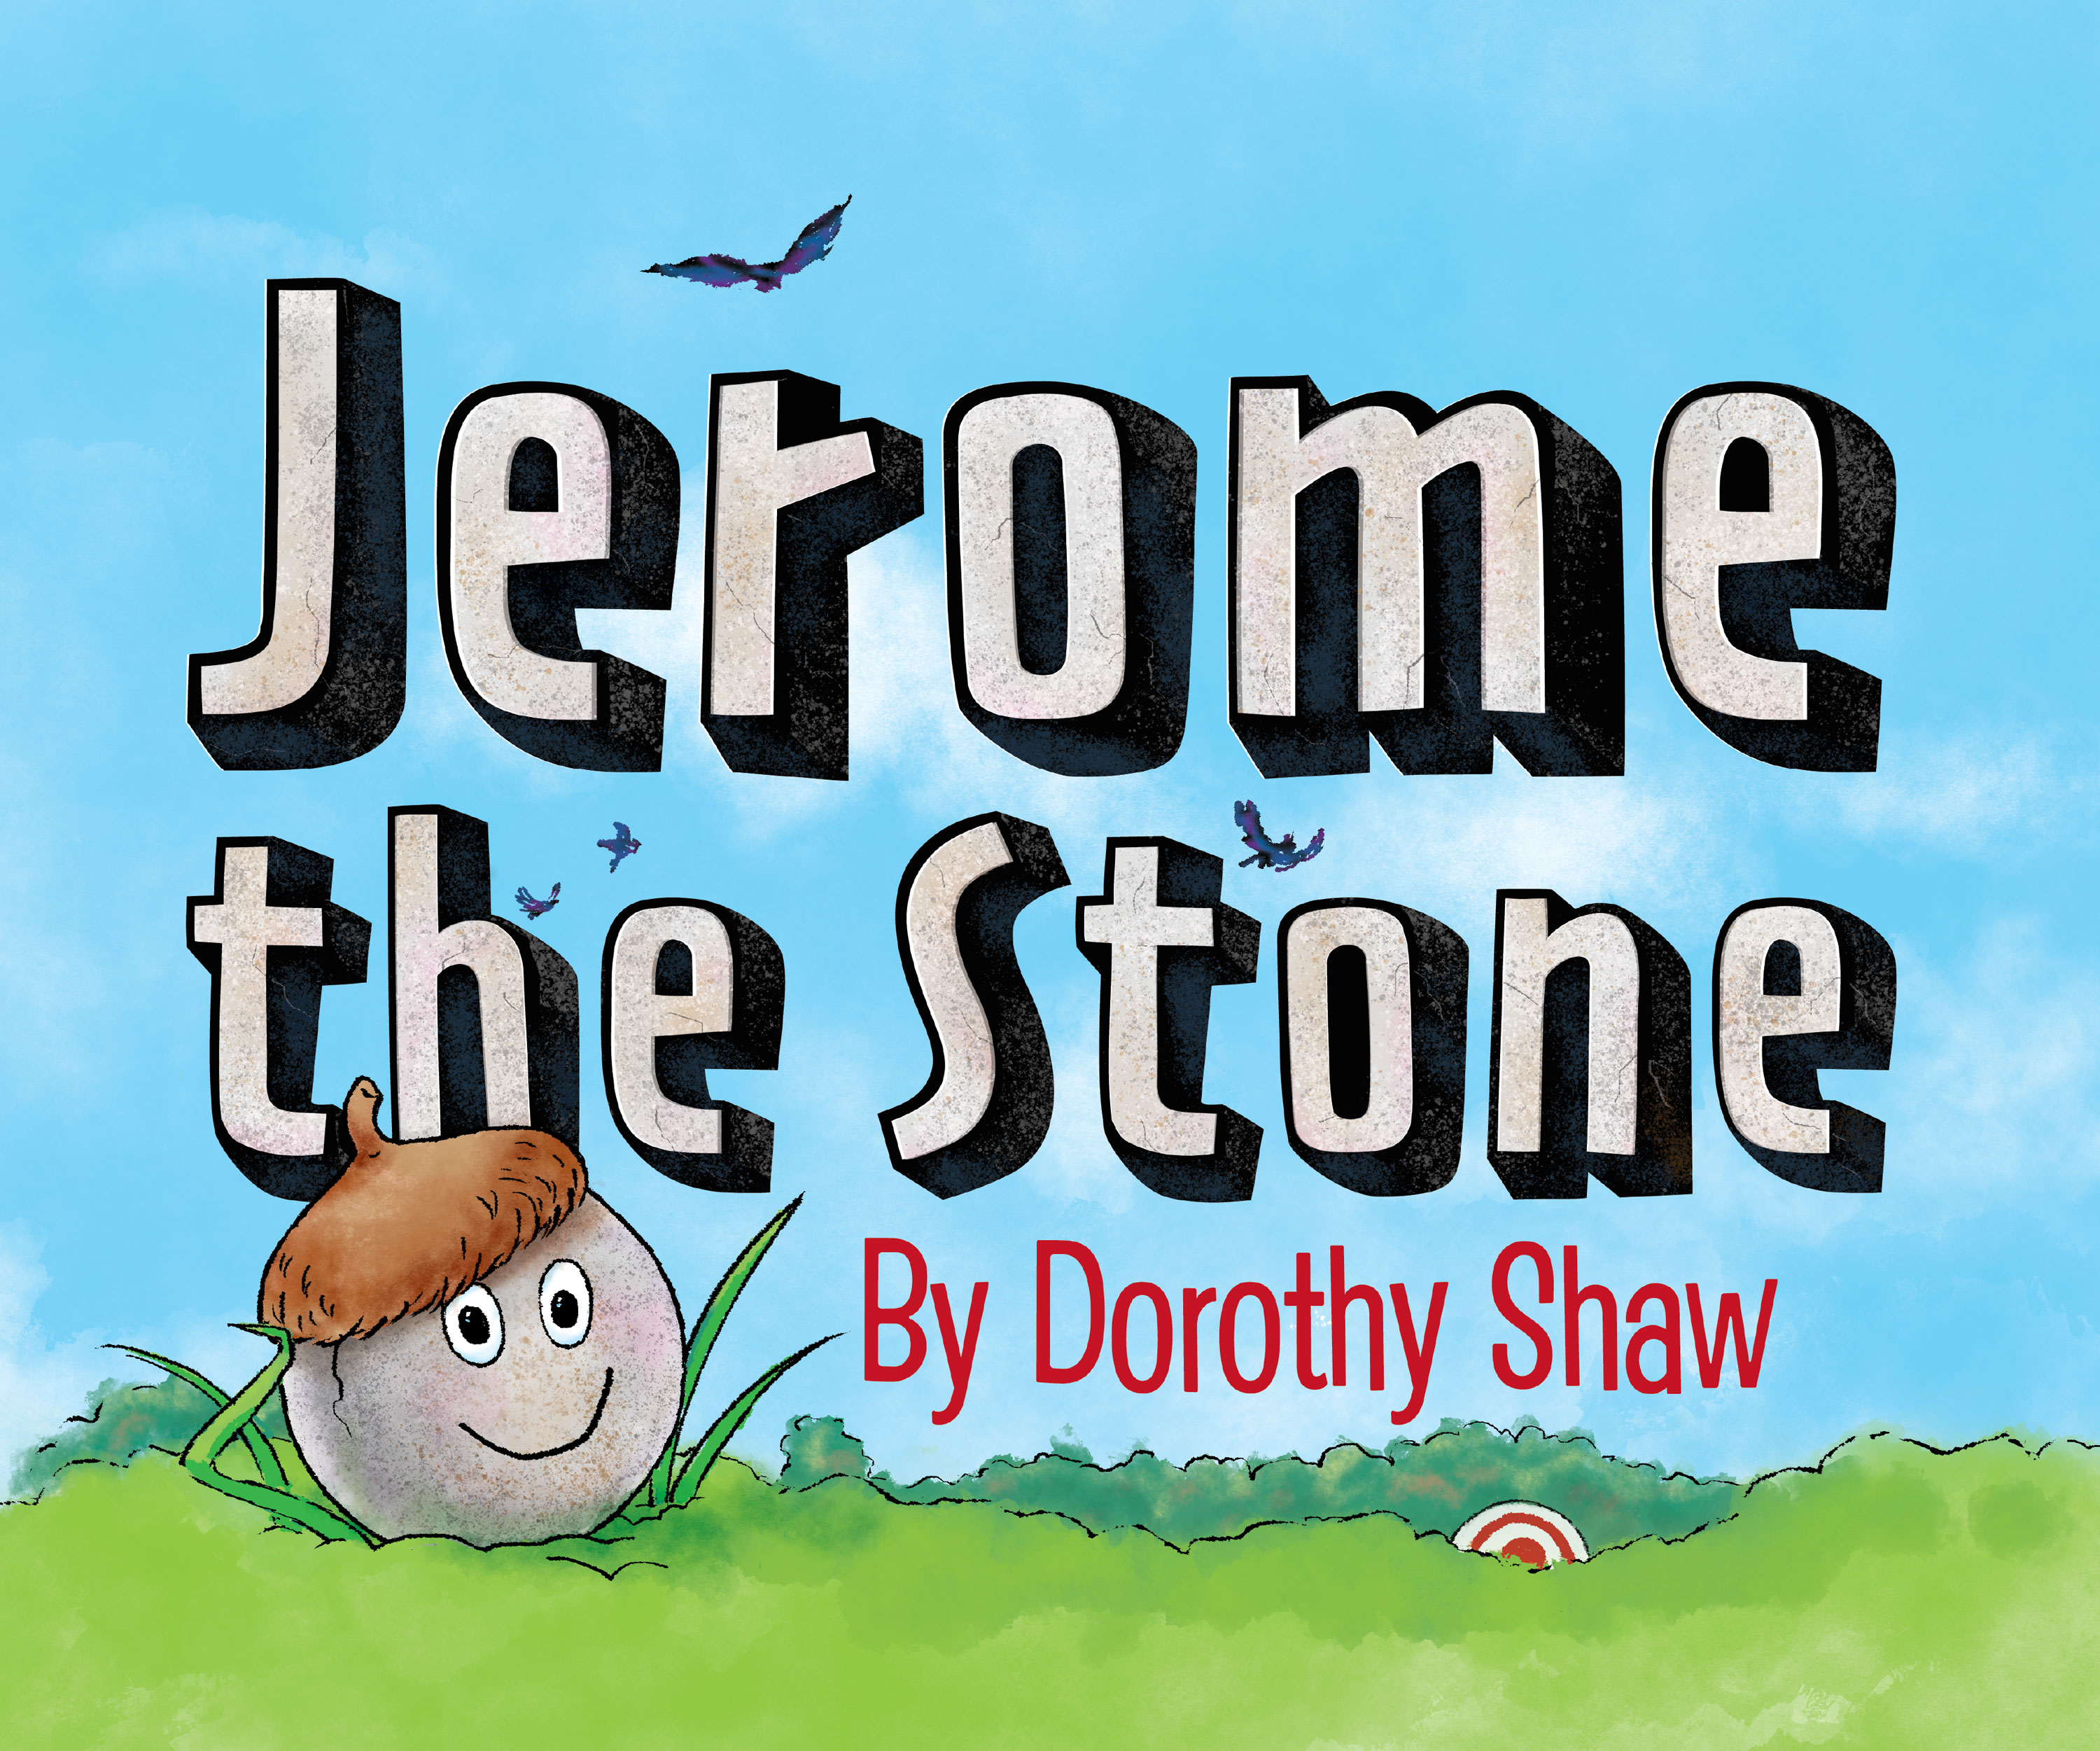 Jerome the Stone, Picture Book